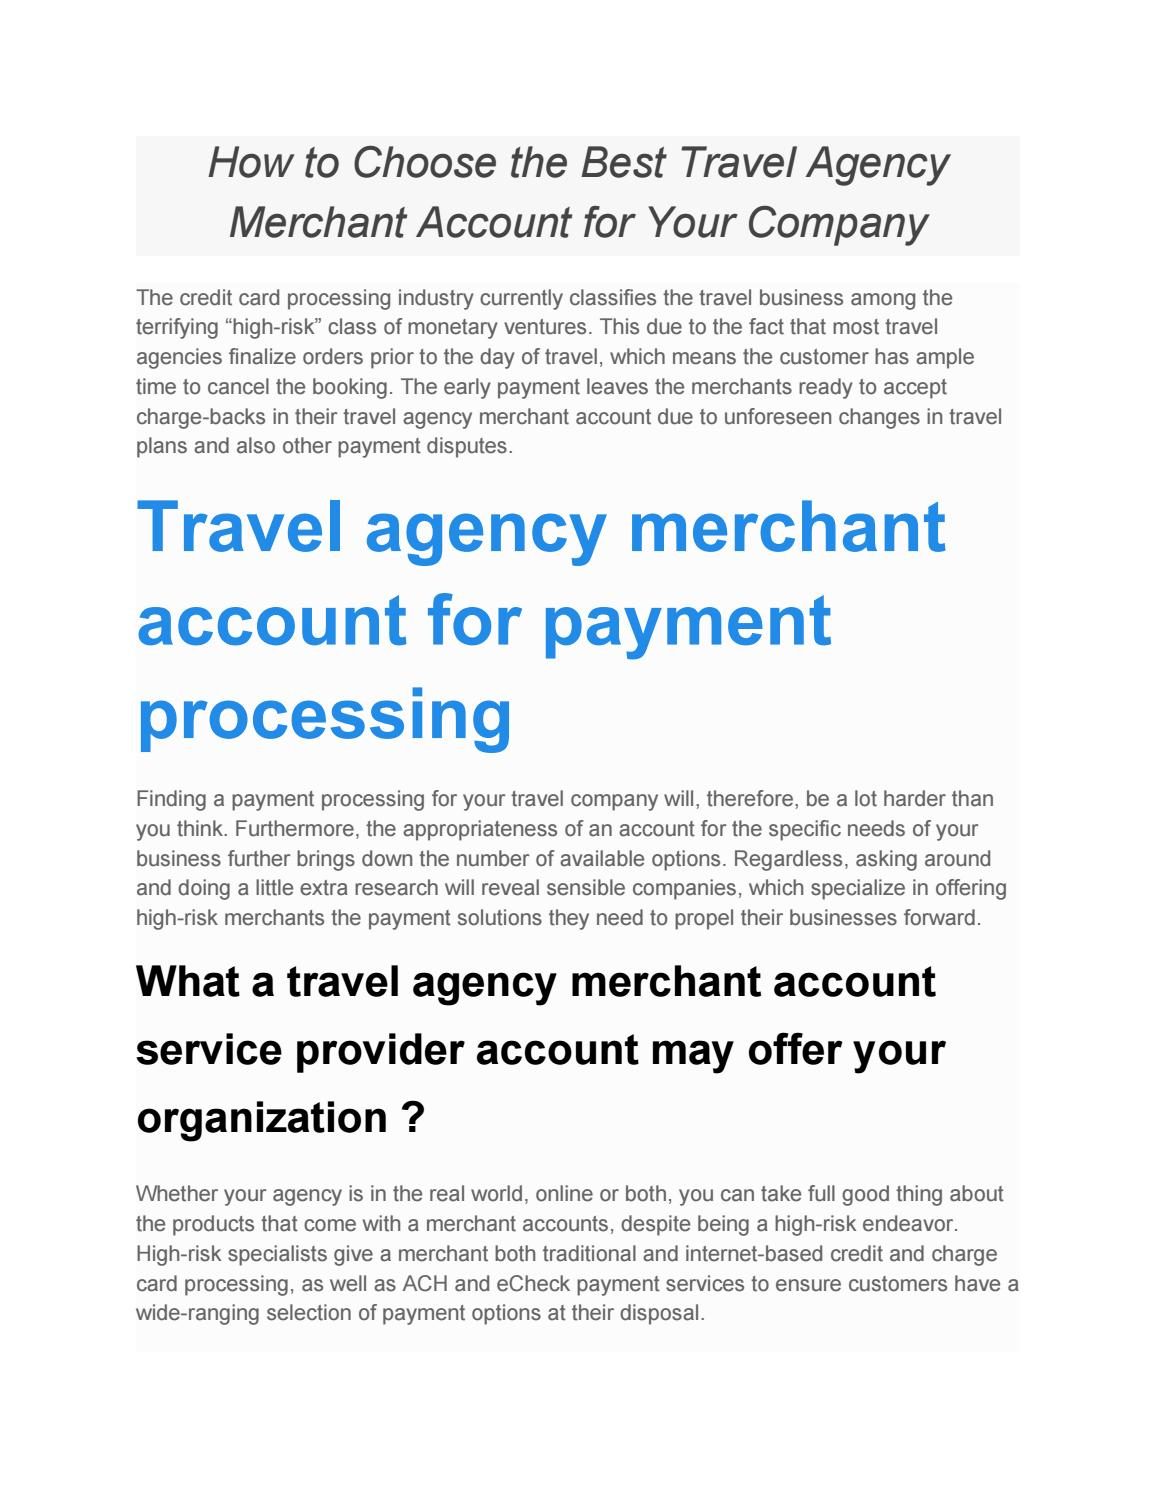 How to Choose the Best Travel Agency Merchant Account for